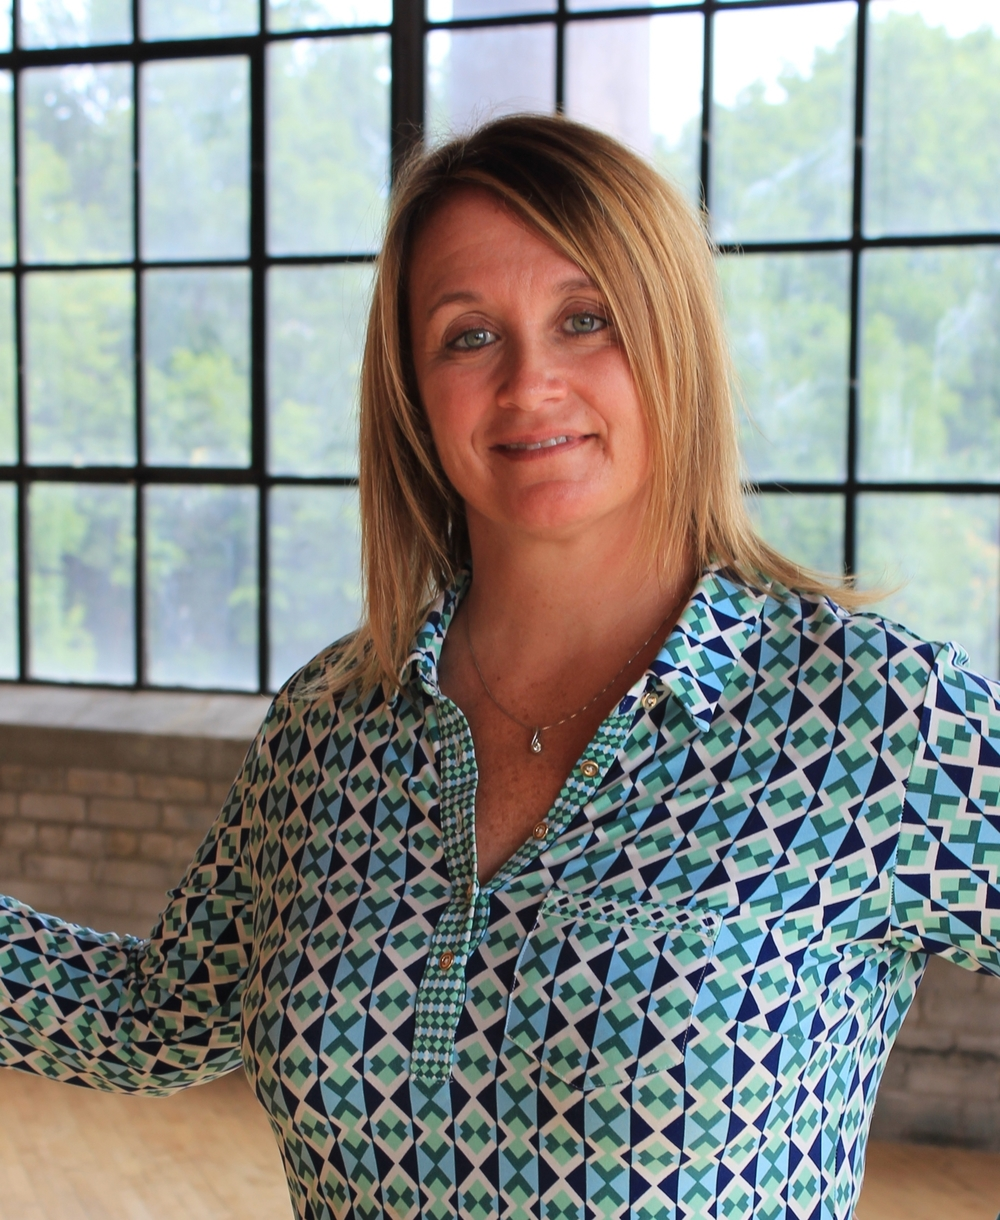 Michelle Fritsche - Director of Training